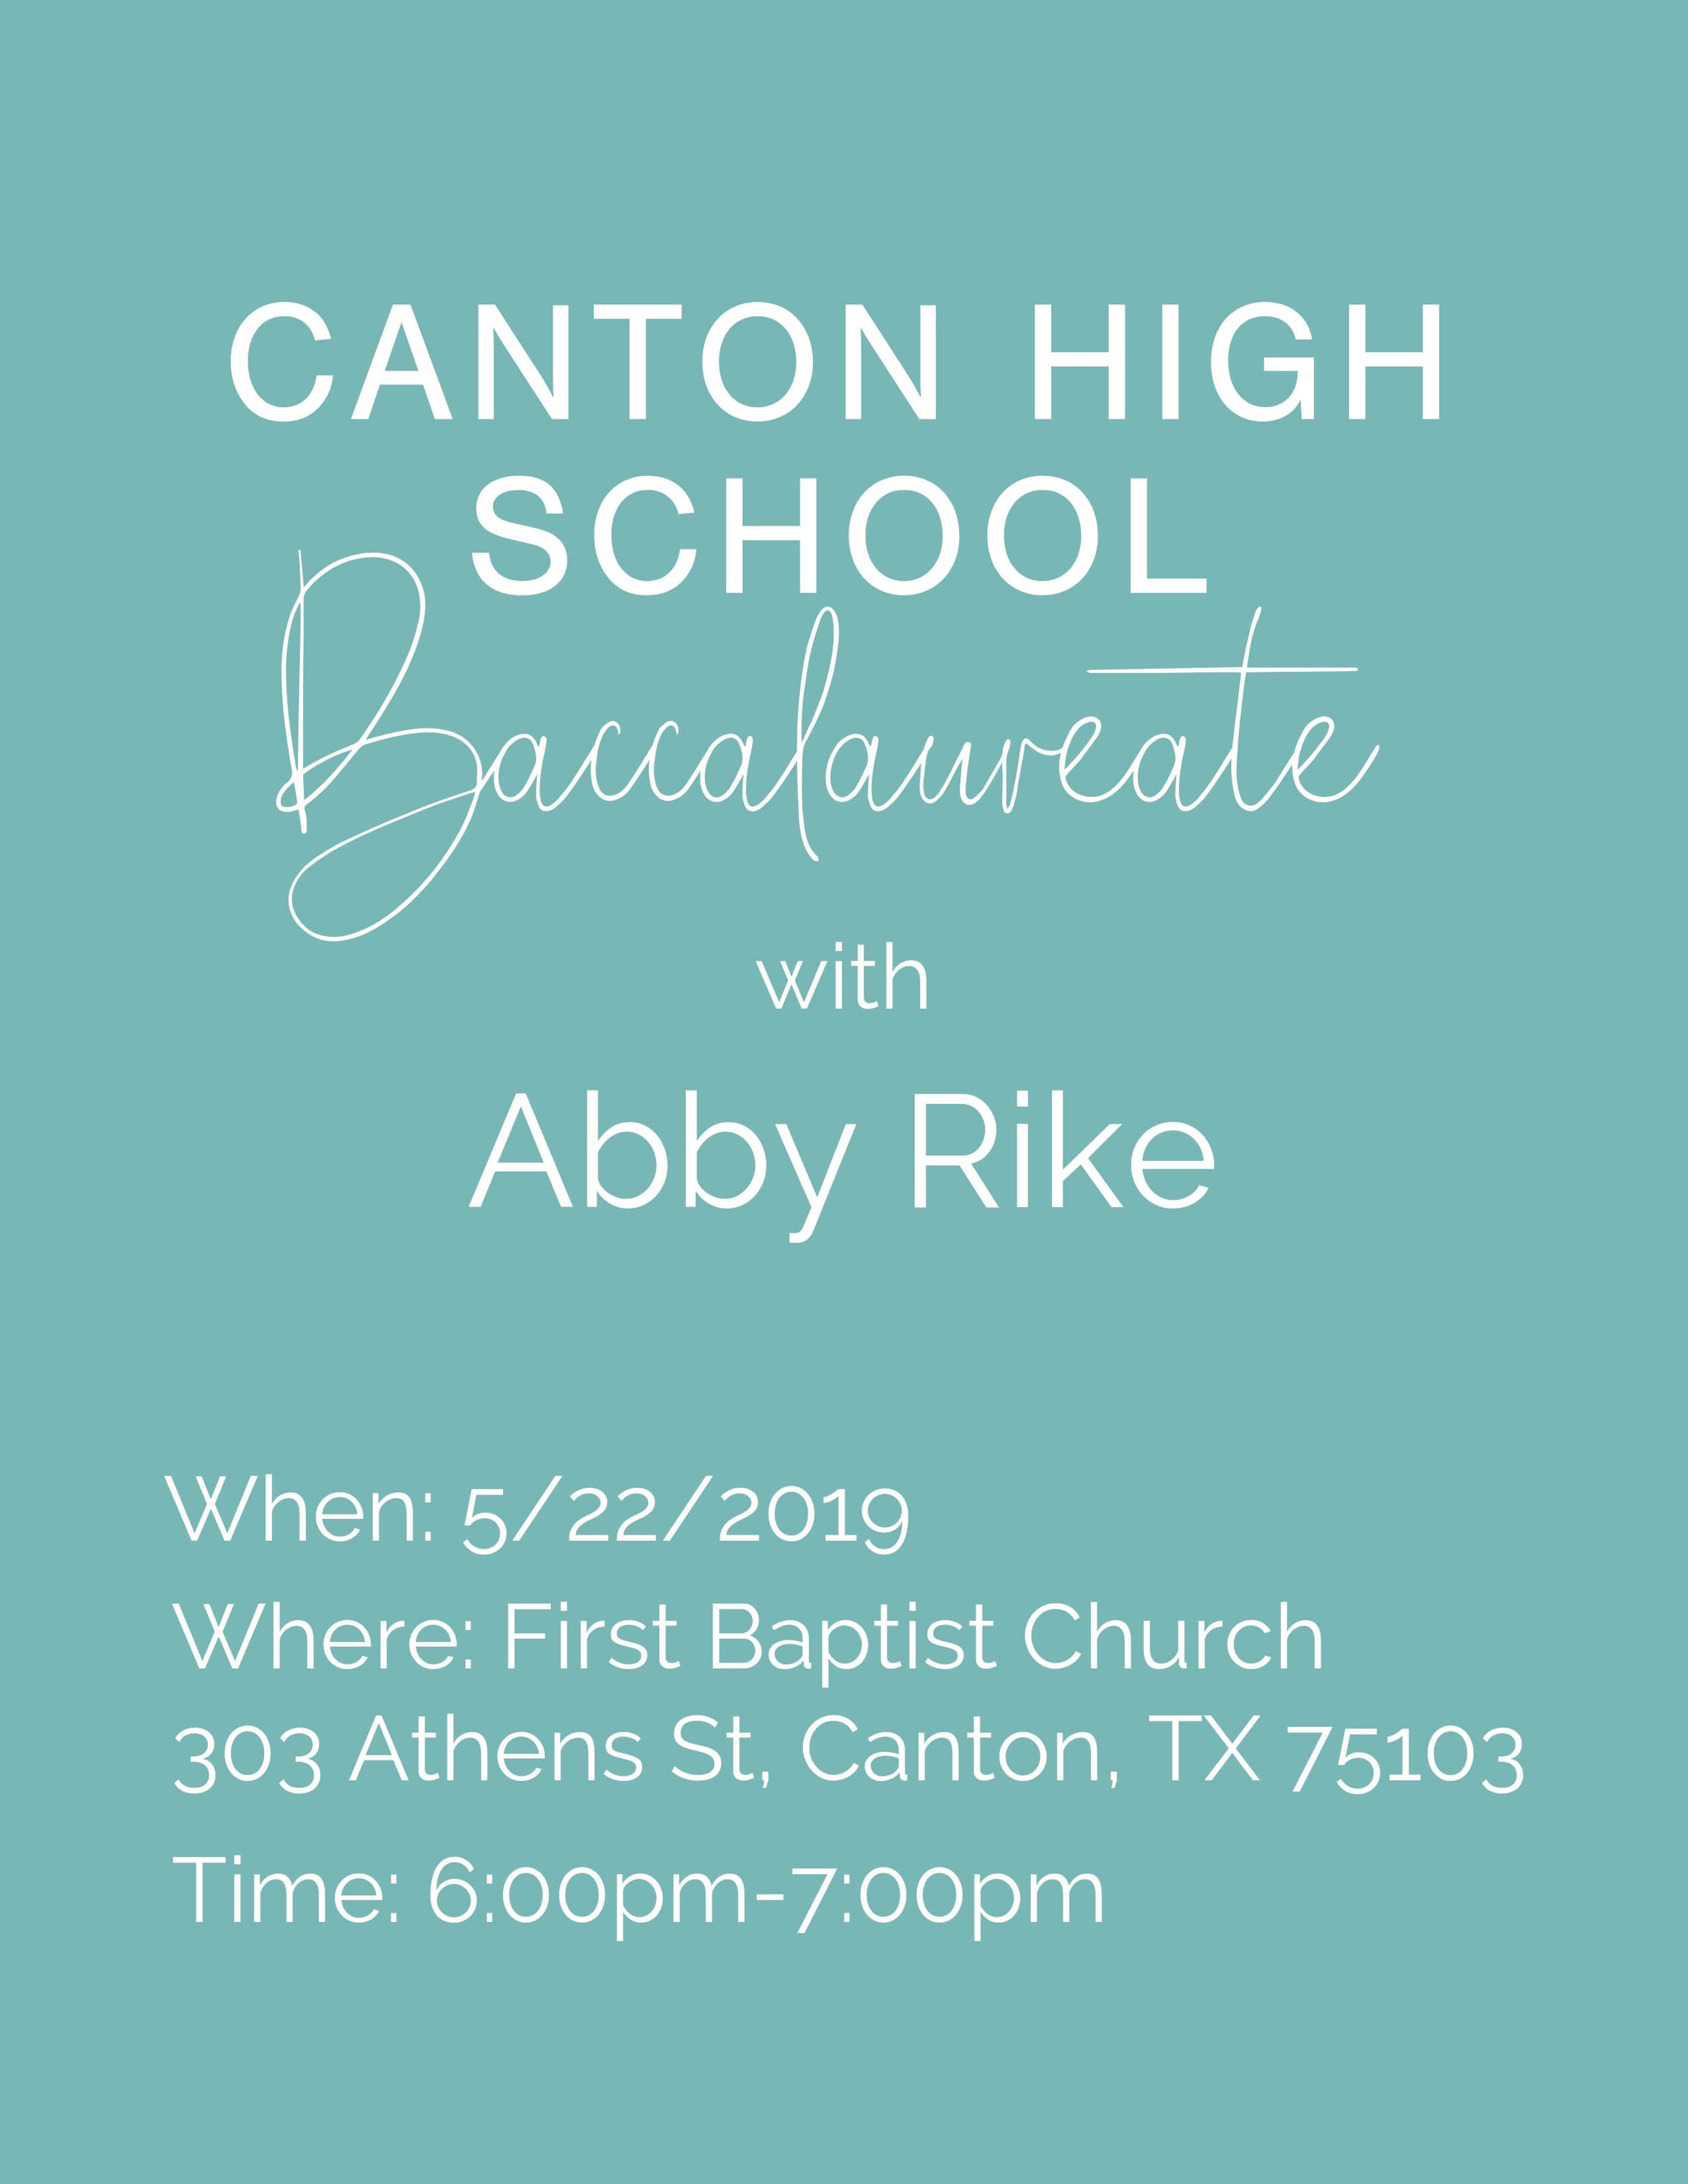 Speaking Event-canton-high-school-baccalaureate-texas